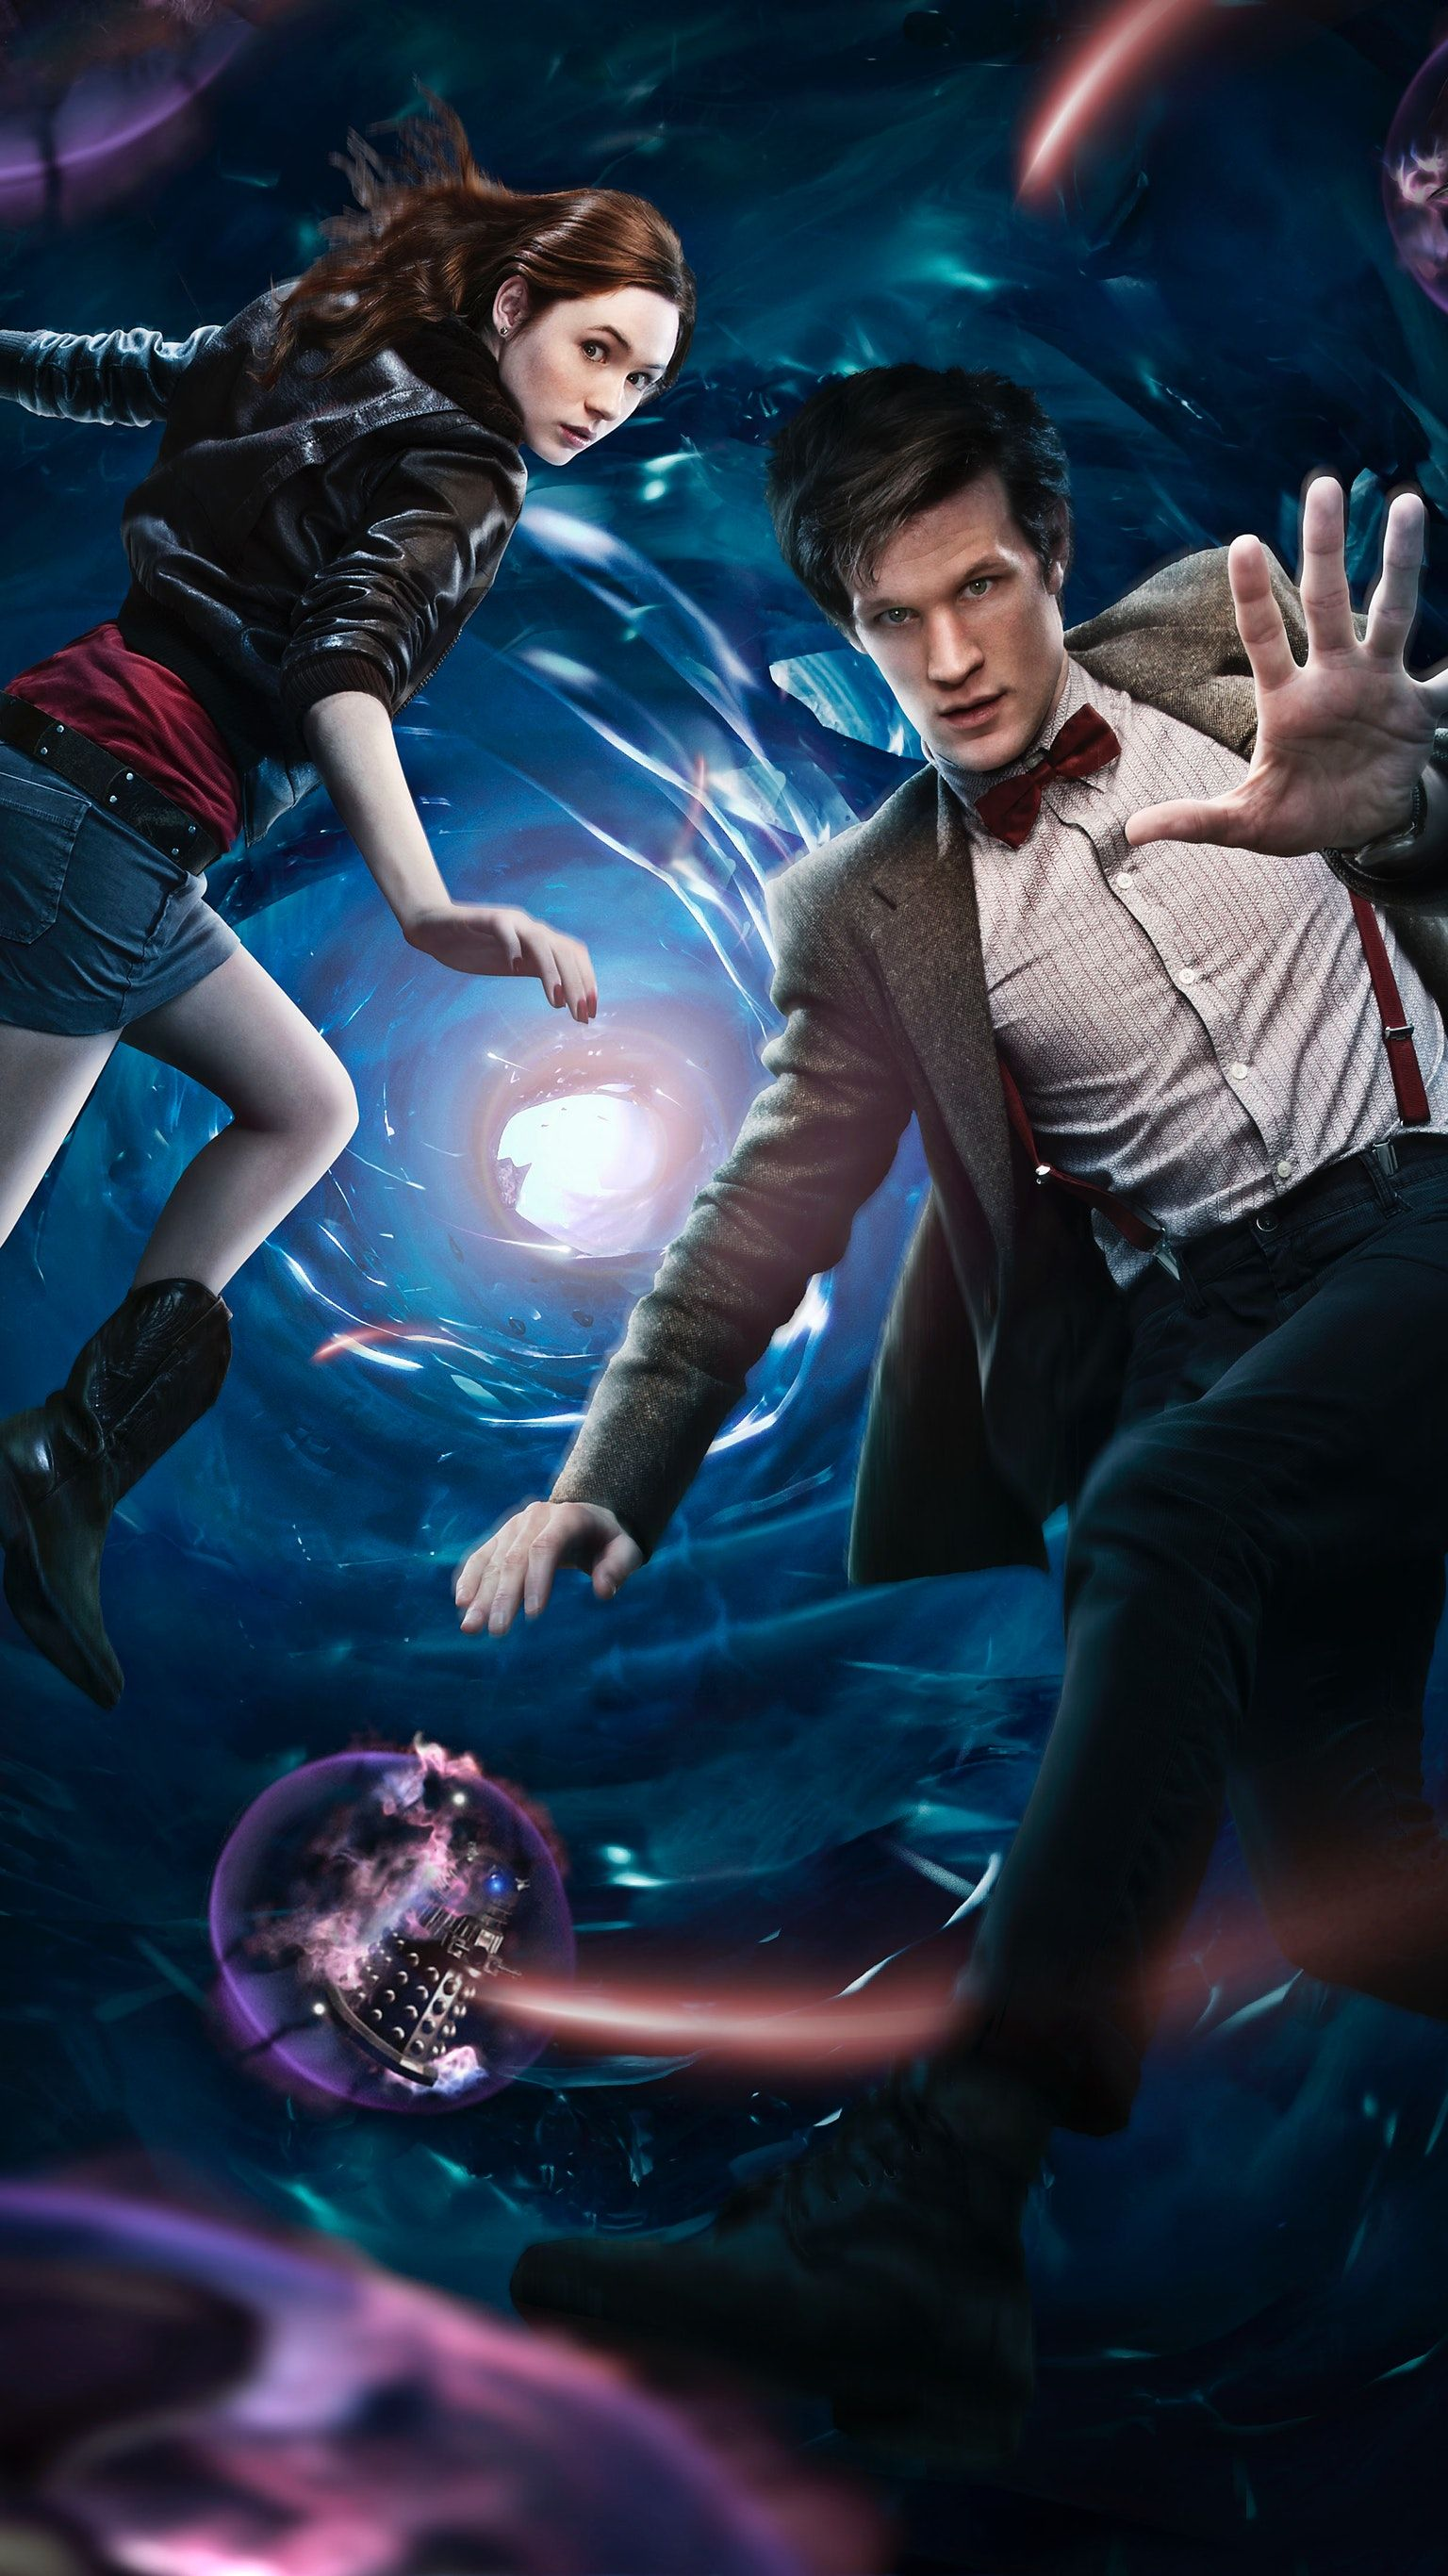 Doctor Who Phone Wallpaper Moviemania Doctor Who Wallpaper Doctor Who Matt Smith Doctor Who